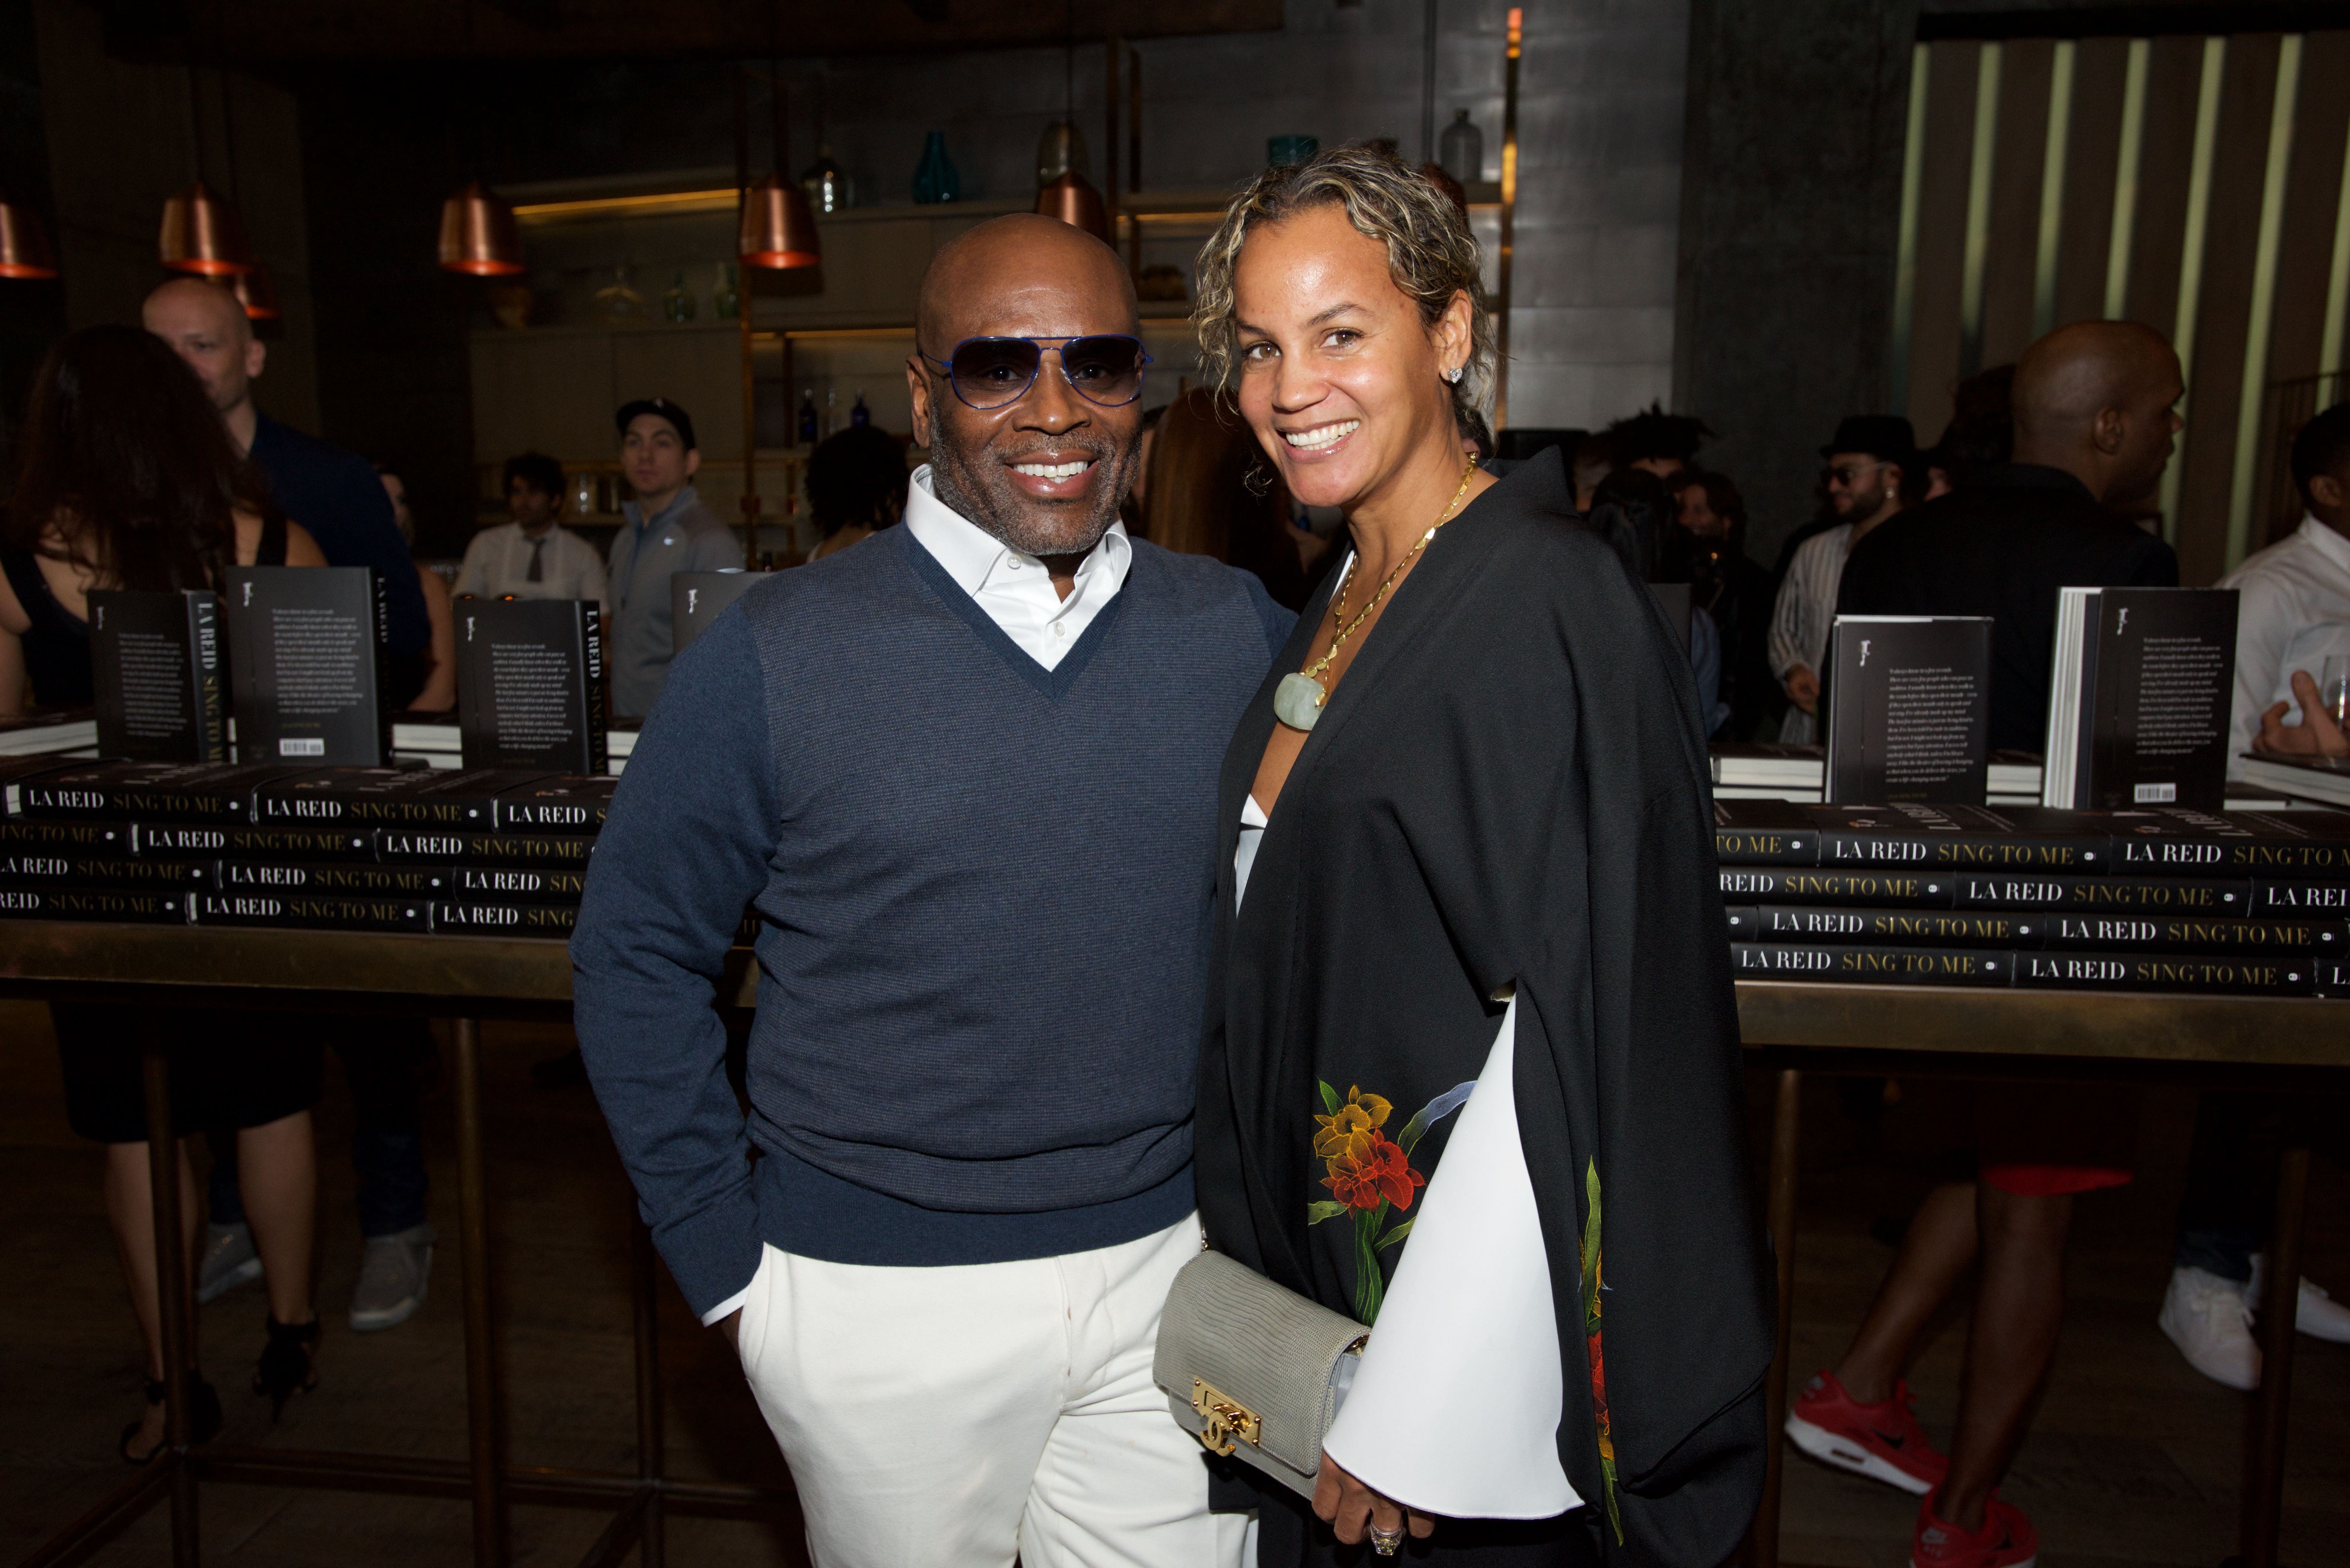 """LA and Erica Reid attend the LA Reid """"Sing To Me"""" Pre-Grammy Brunch at Hinoki & The Bird on February 13, 2016 in Los Angeles, California   Source: Getty Images"""